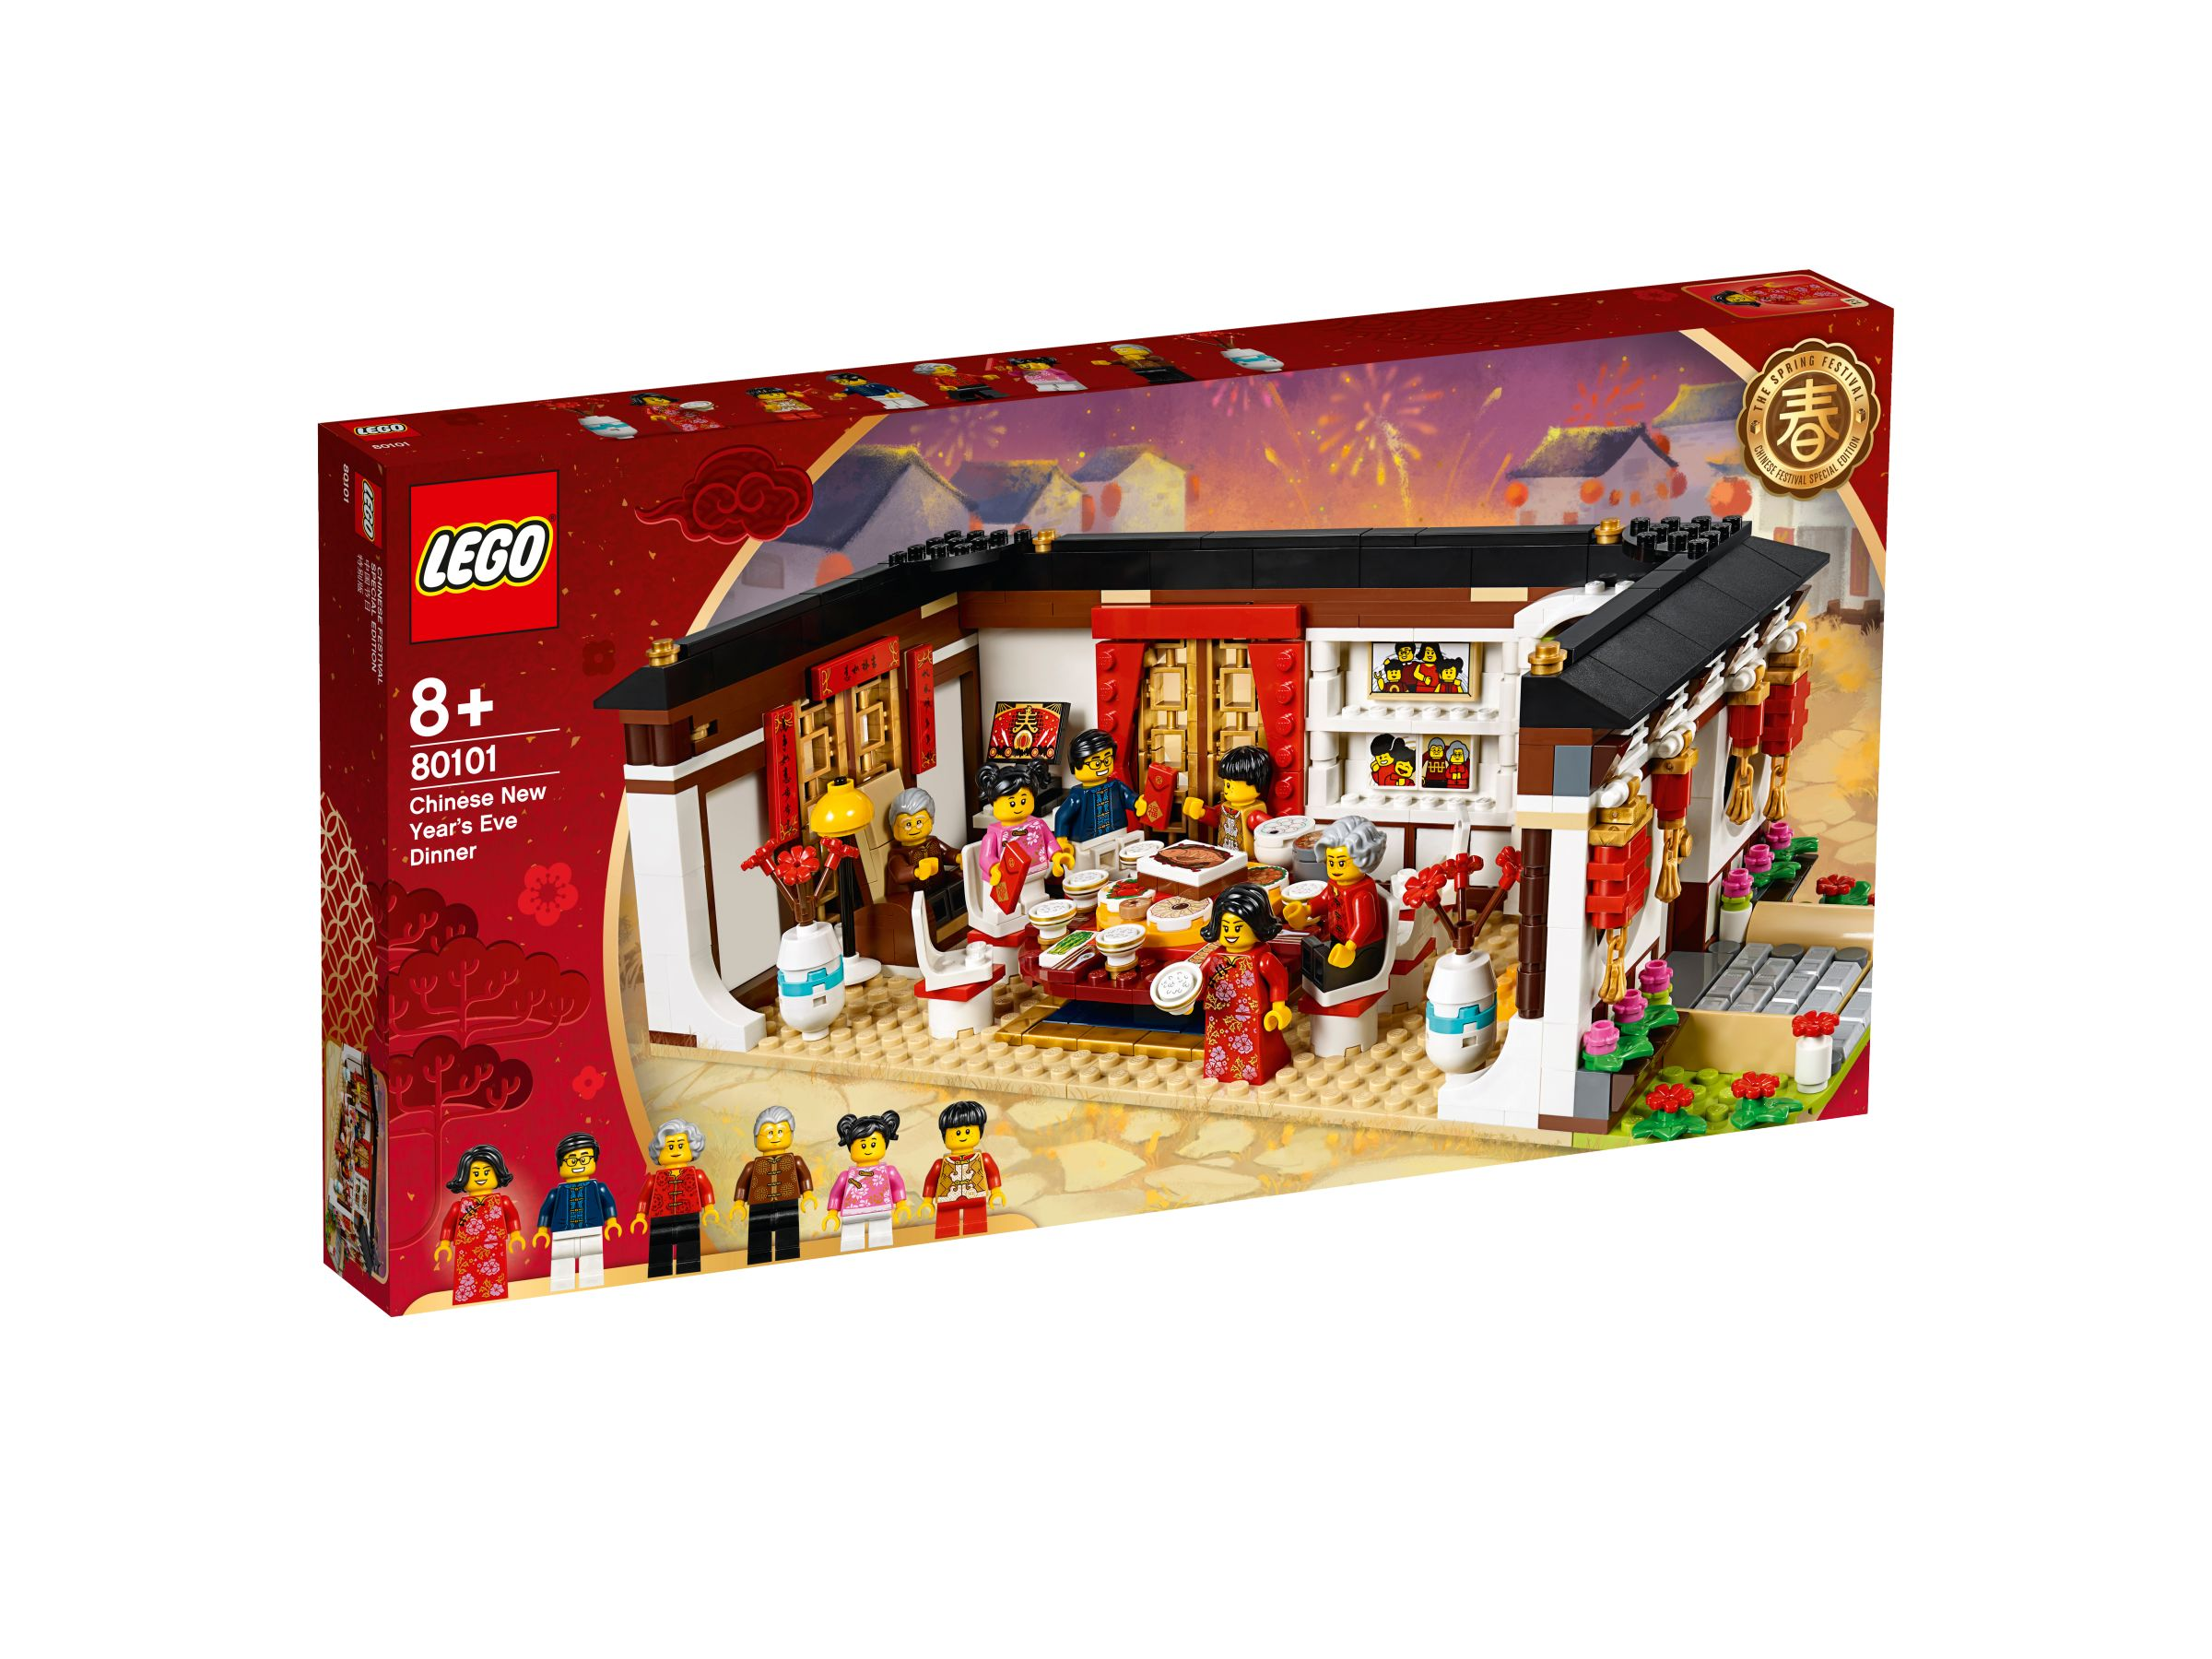 LEGO Seasonal 80101 Chinese New Year's Eve Dinner LEGO_80101_alt1.jpg